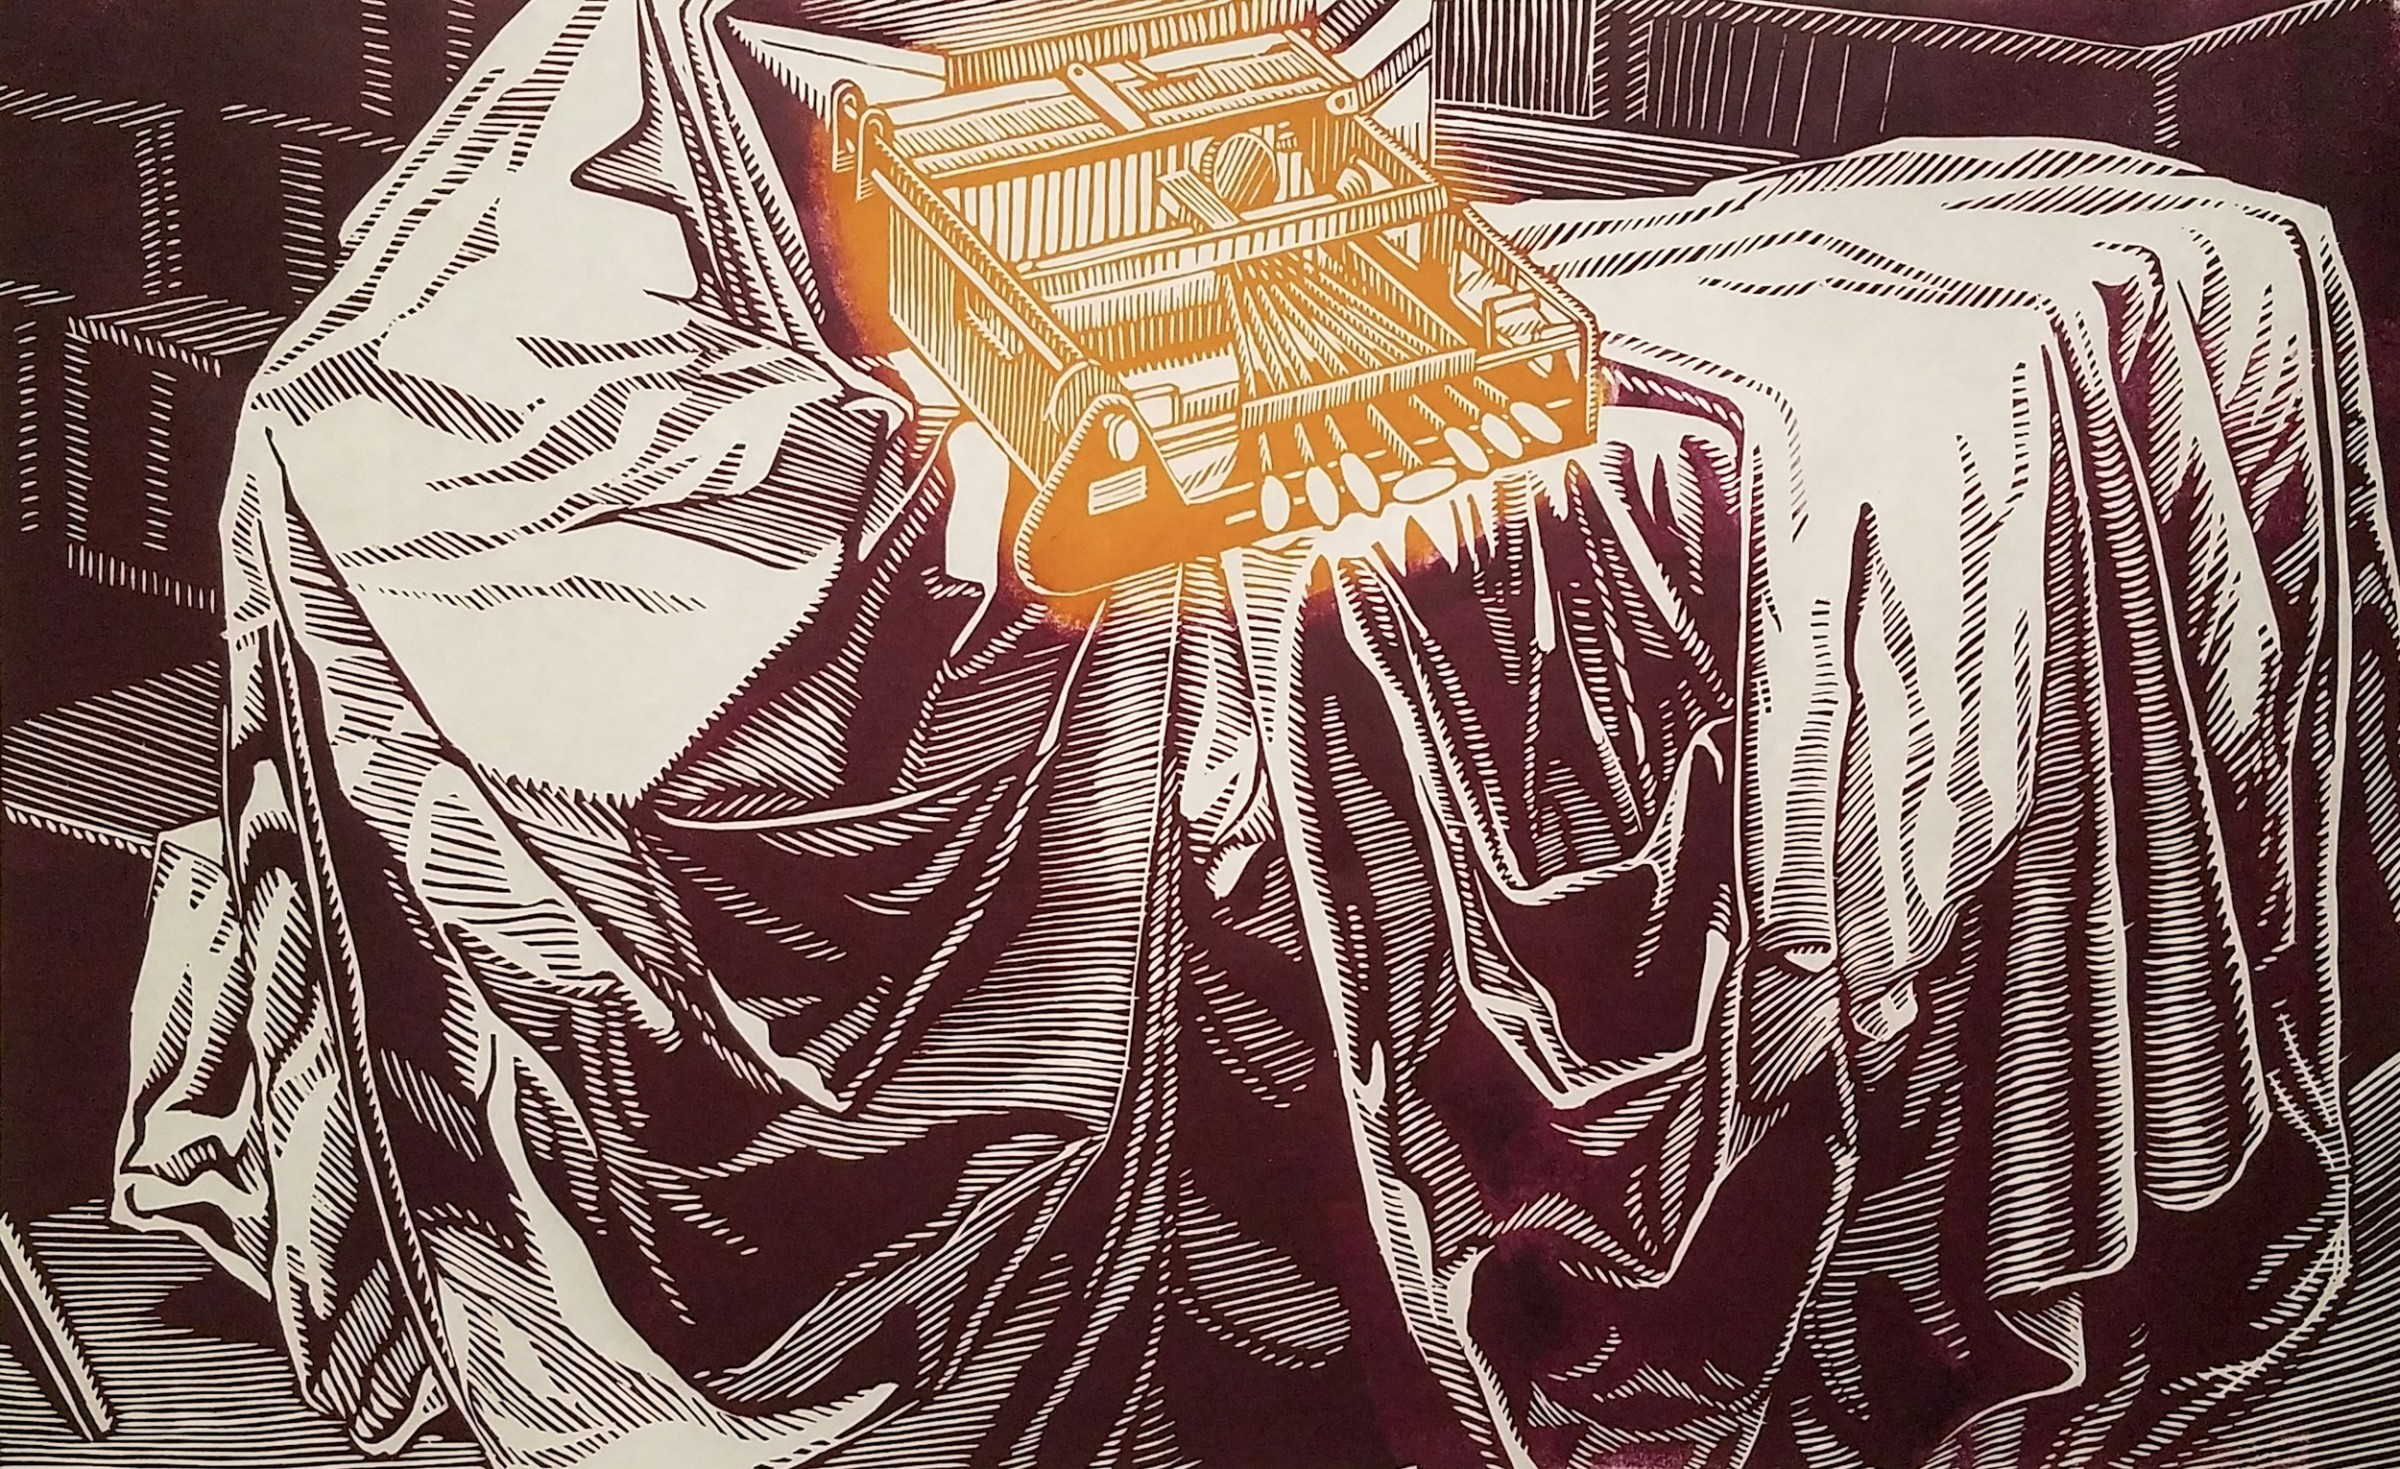 """<span class=""""link fancybox-details-link""""><a href=""""/exhibitions/17/works/image_standalone741/"""">View Detail Page</a></span><p><strong>John McKaig</strong></p><p>Blind Crown II</p><p>woodcut, ed of 15</p><p>111 x 81cm</p><p>£700 framed</p><p>£500 unframed</p>"""